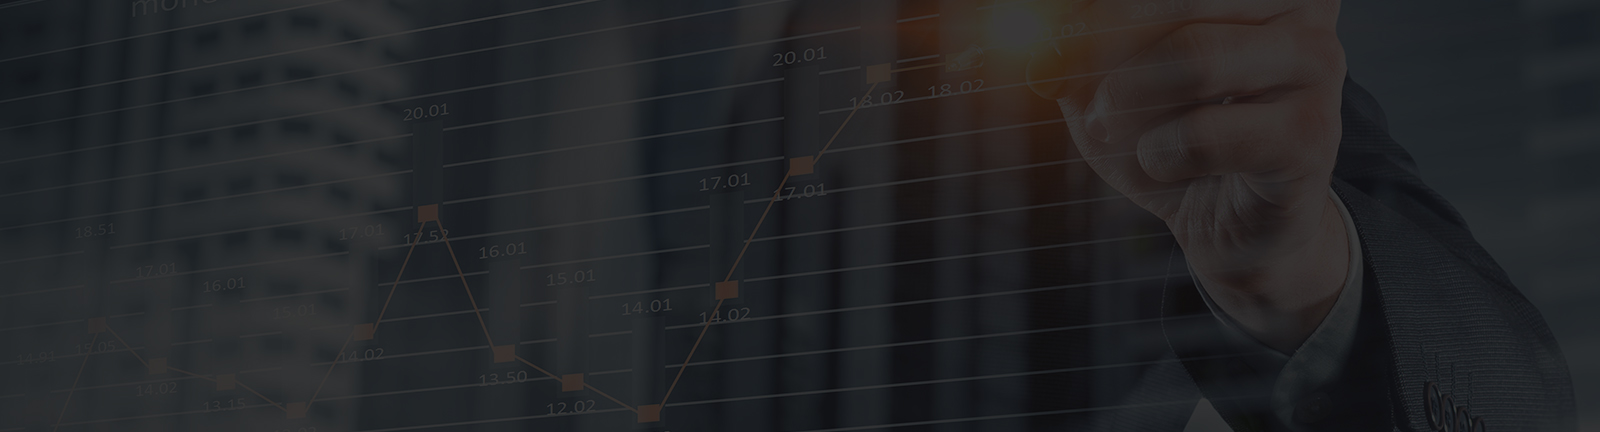 Campaign measurement analytics for consumer-banking deposit products